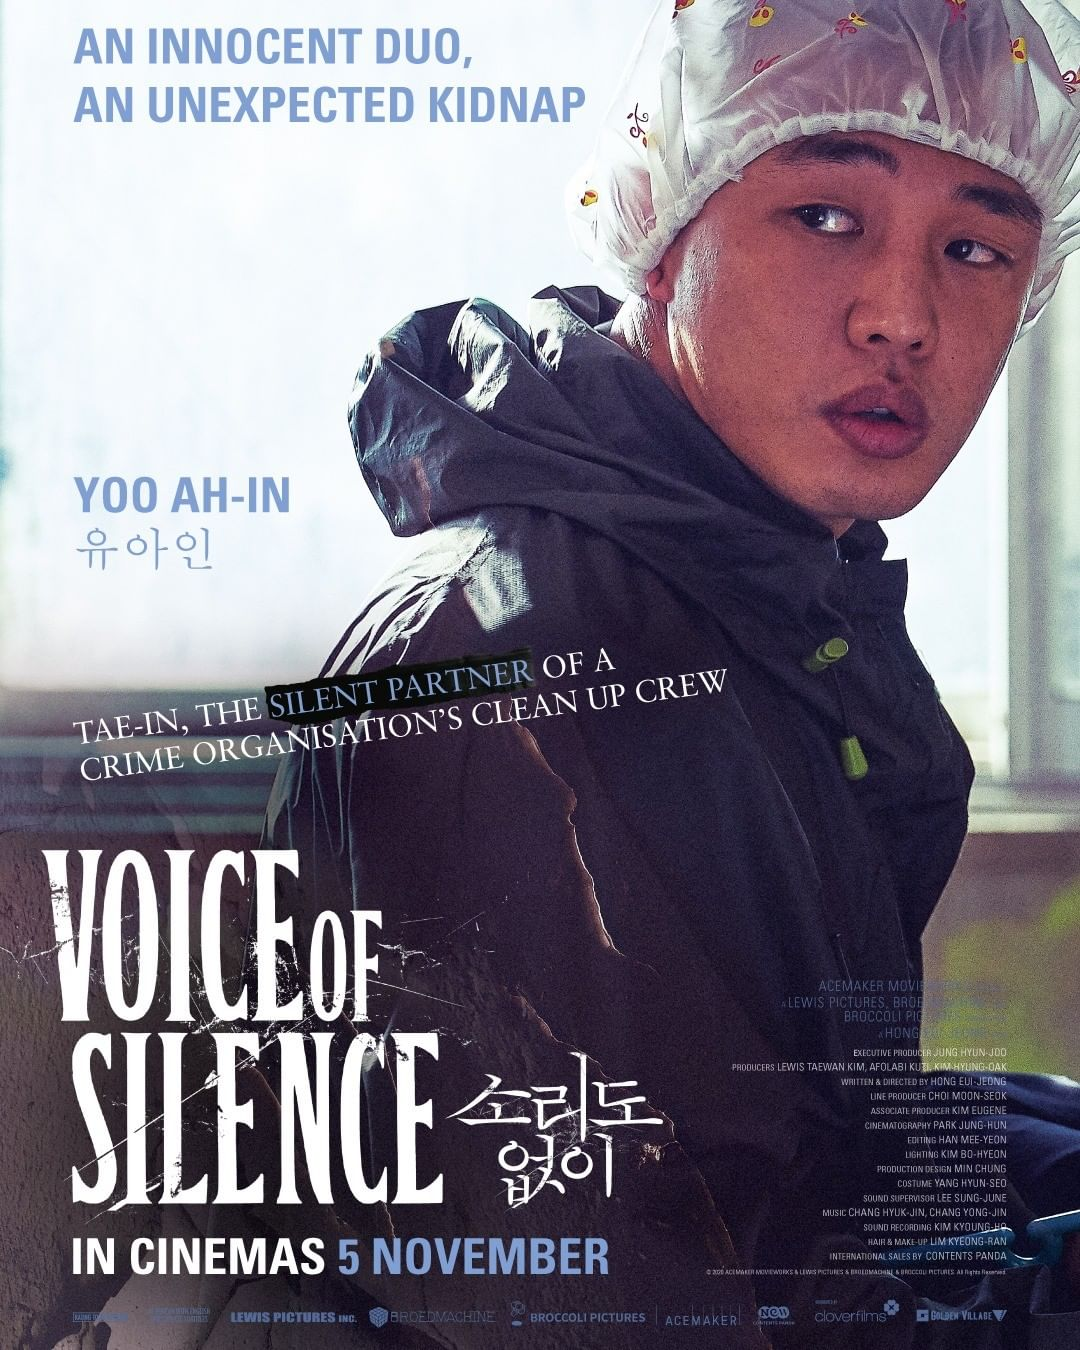 Yoo Ah In VOICE OF SILENCE Media Interviews Part 1 Depicting Real  Ordinariness Beyond Transformation  Yoo Ah In SikSeekLand